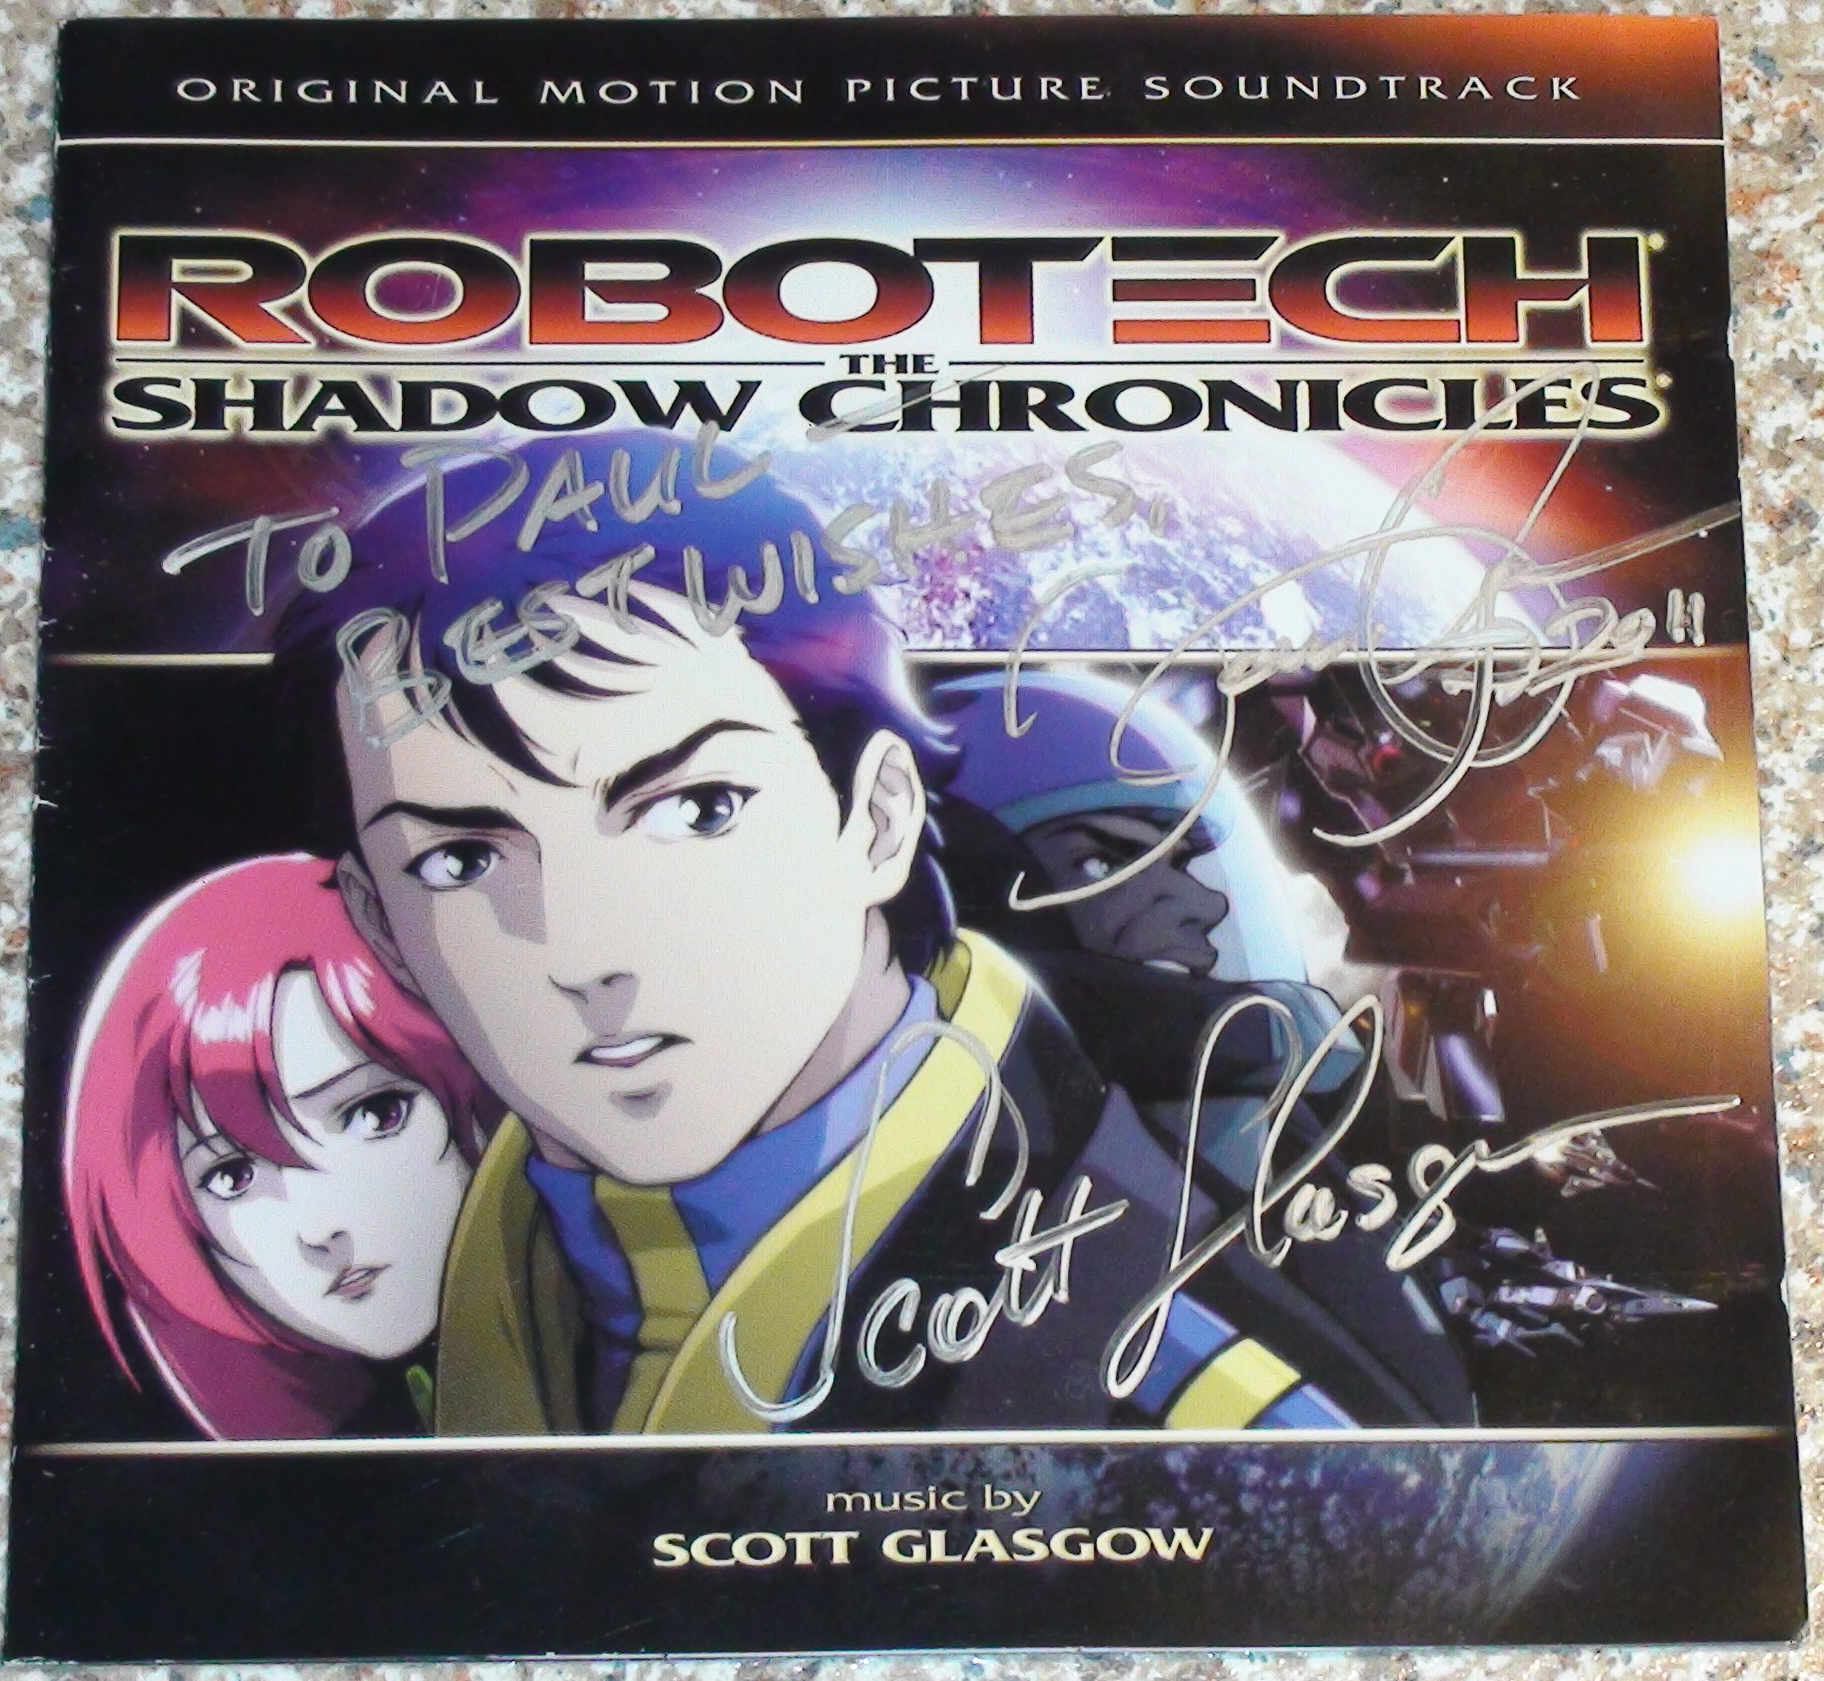 Robotech - Director, Composer, Voice Actors